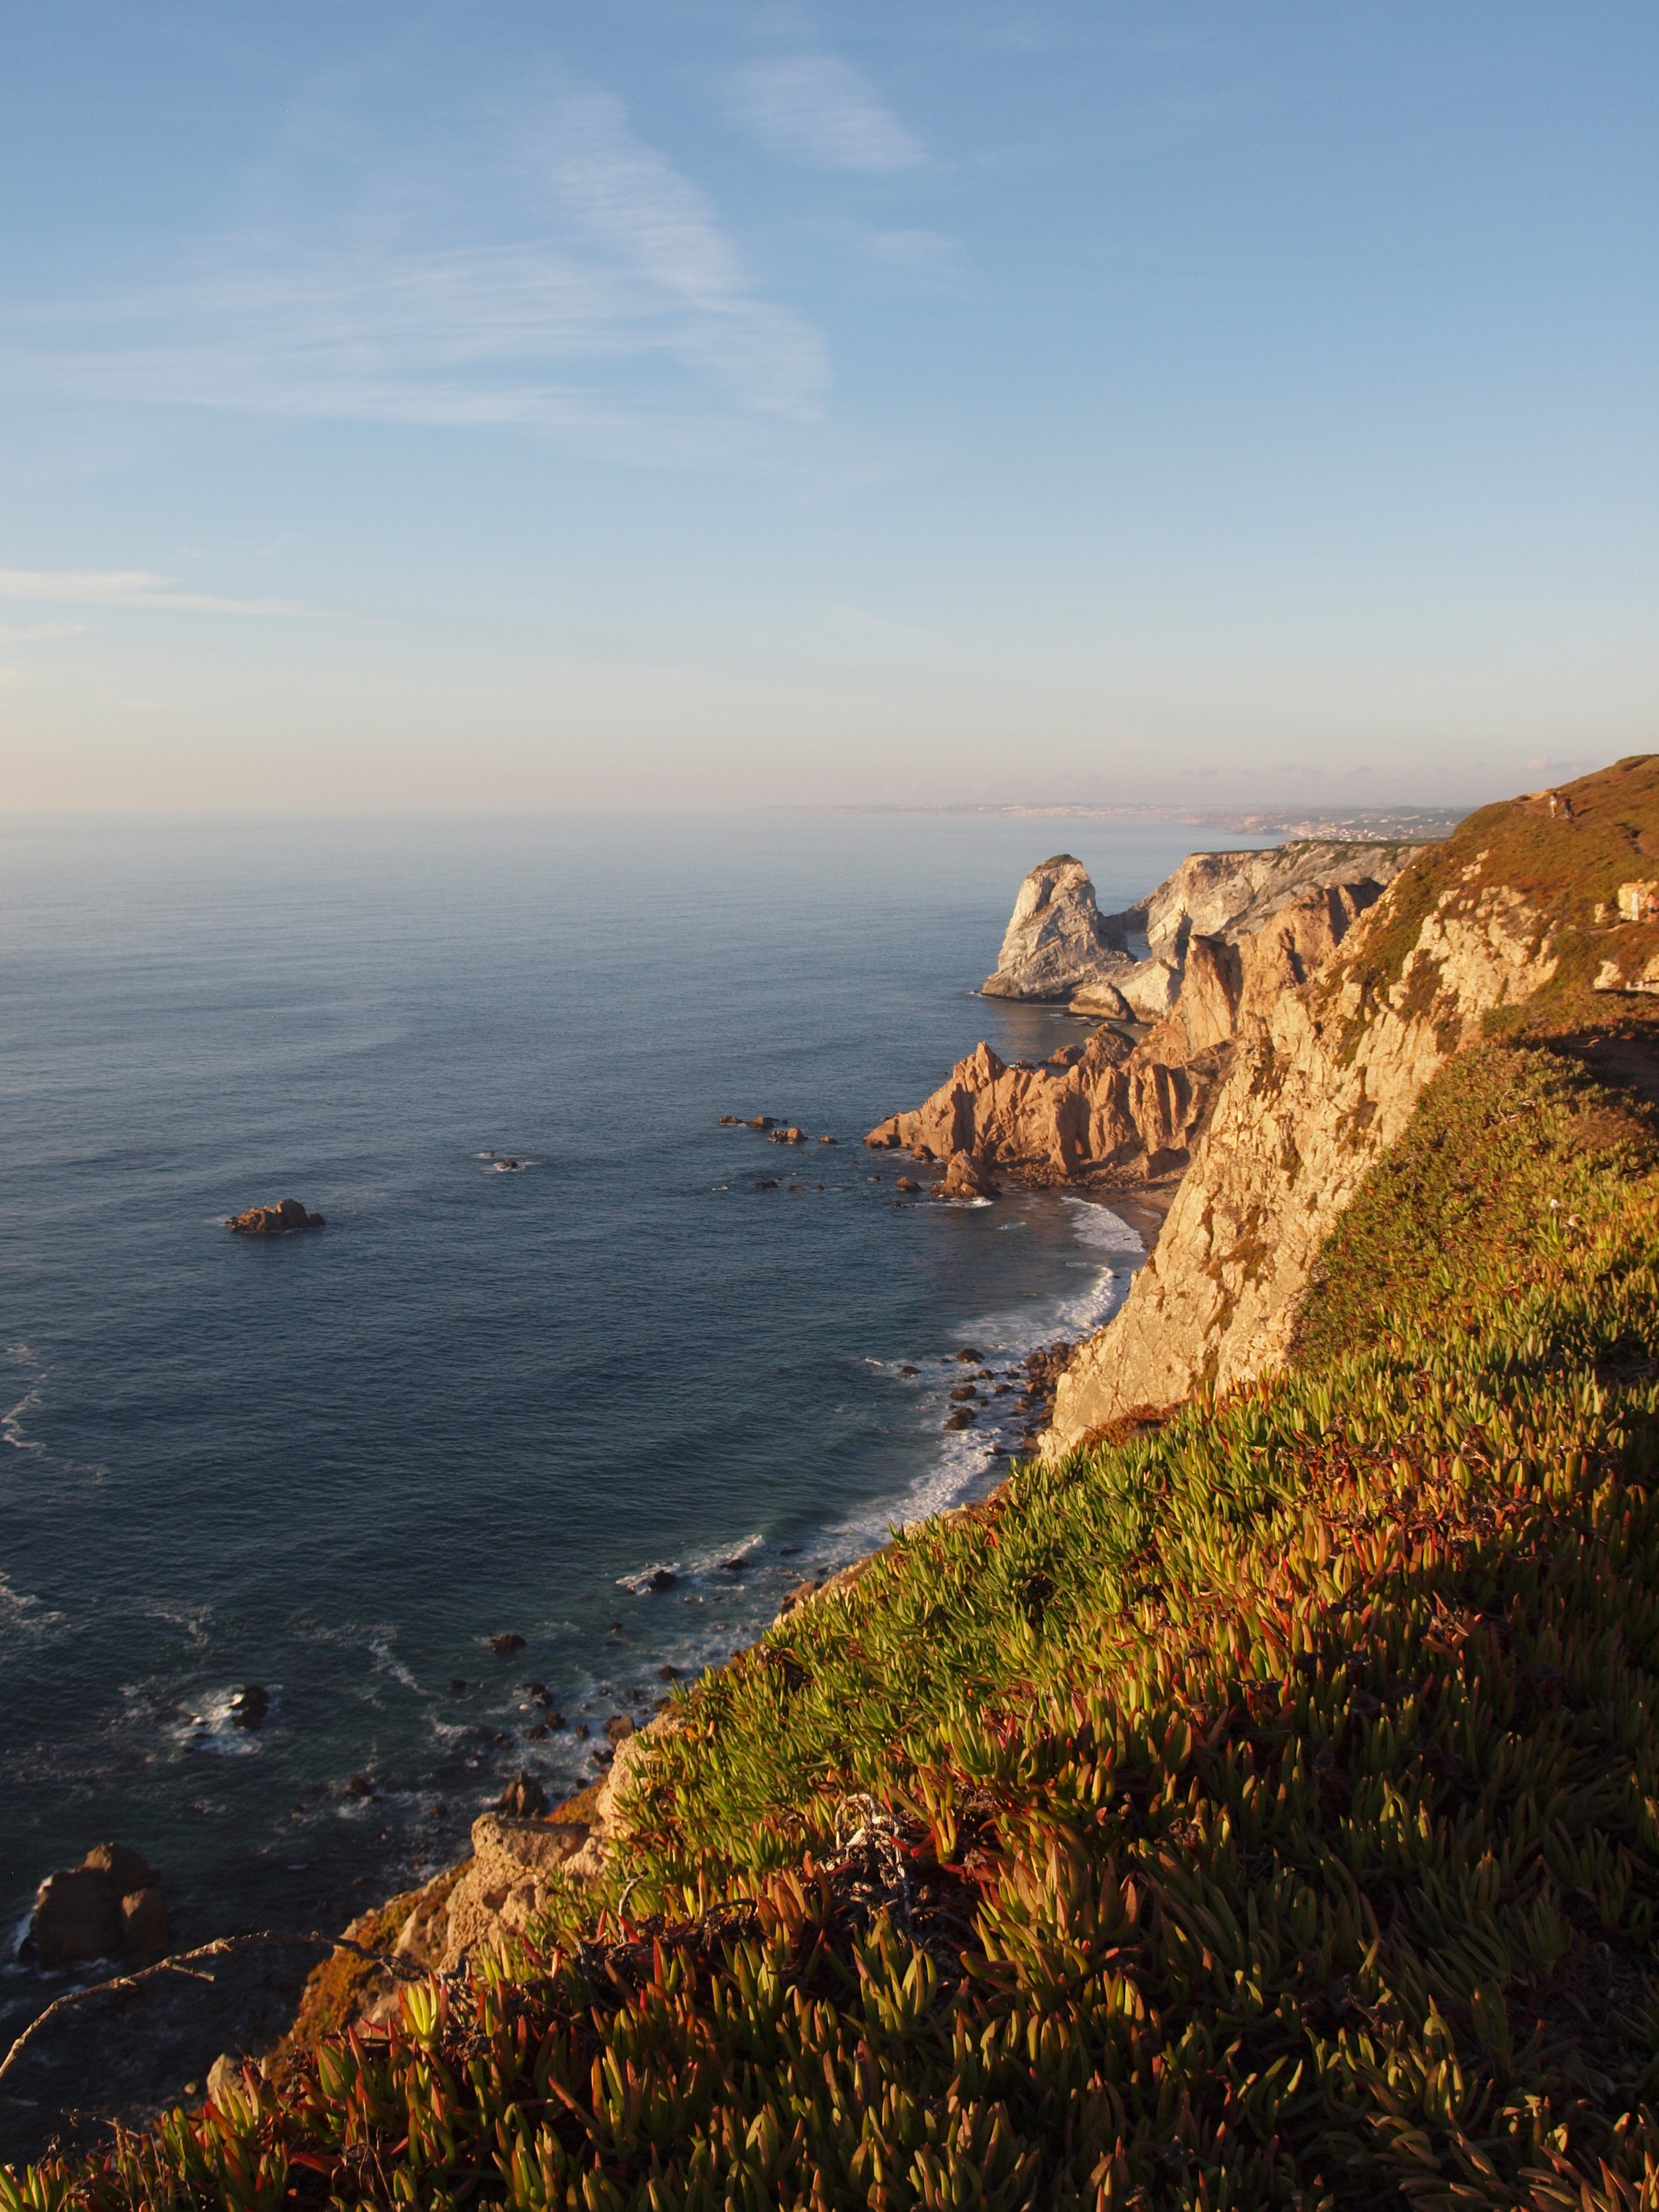 Cabo da Roca -the westernmost point of continental Europe in Portugal